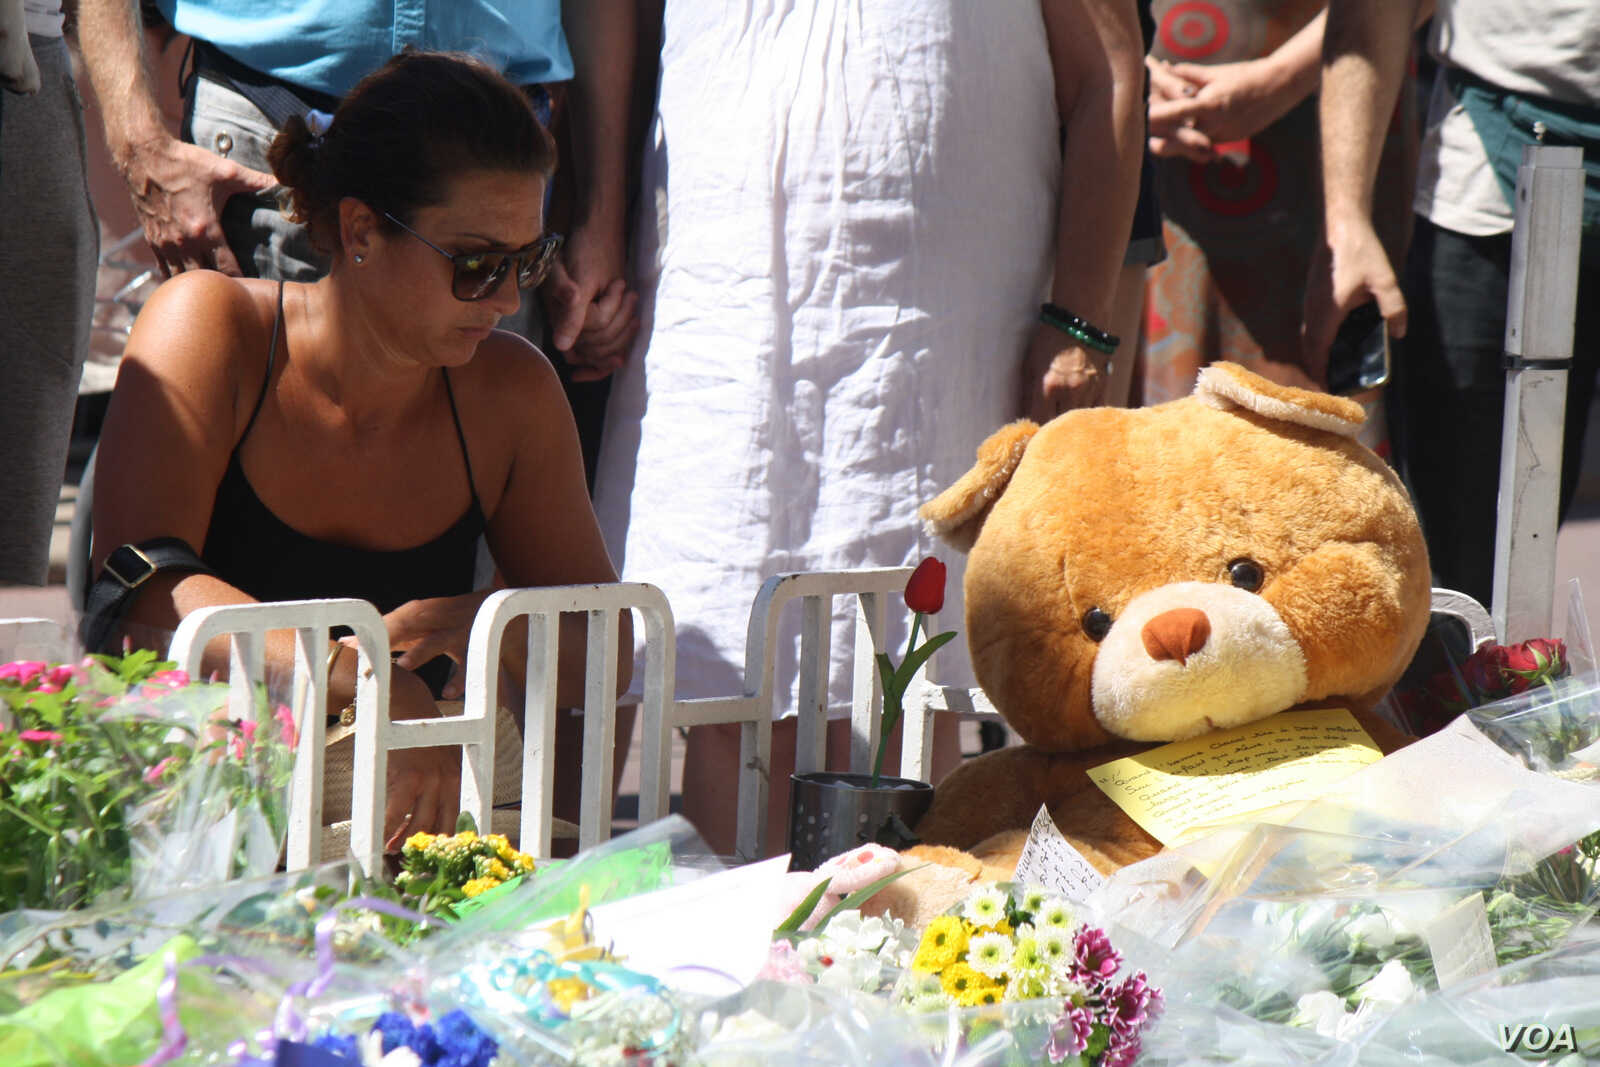 Toys are among the mementos placed on memorials in Nice, France to commemorate the deaths of ten children, July 16, 2016. (H.Murdock/VOA)